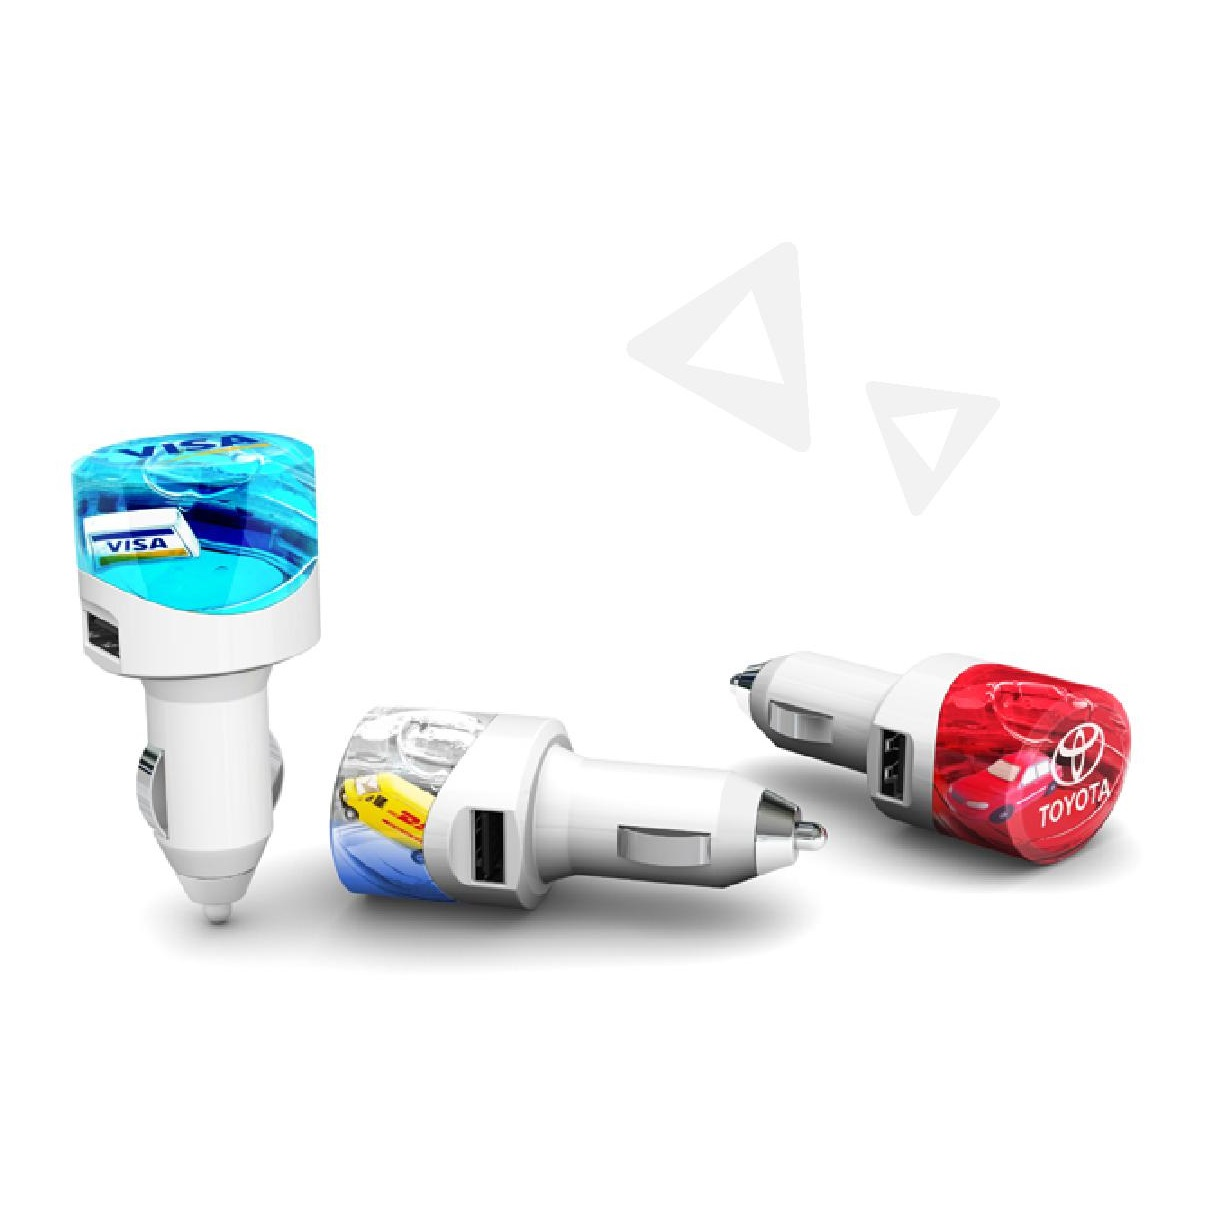 Usb car charger giveaways for 1st